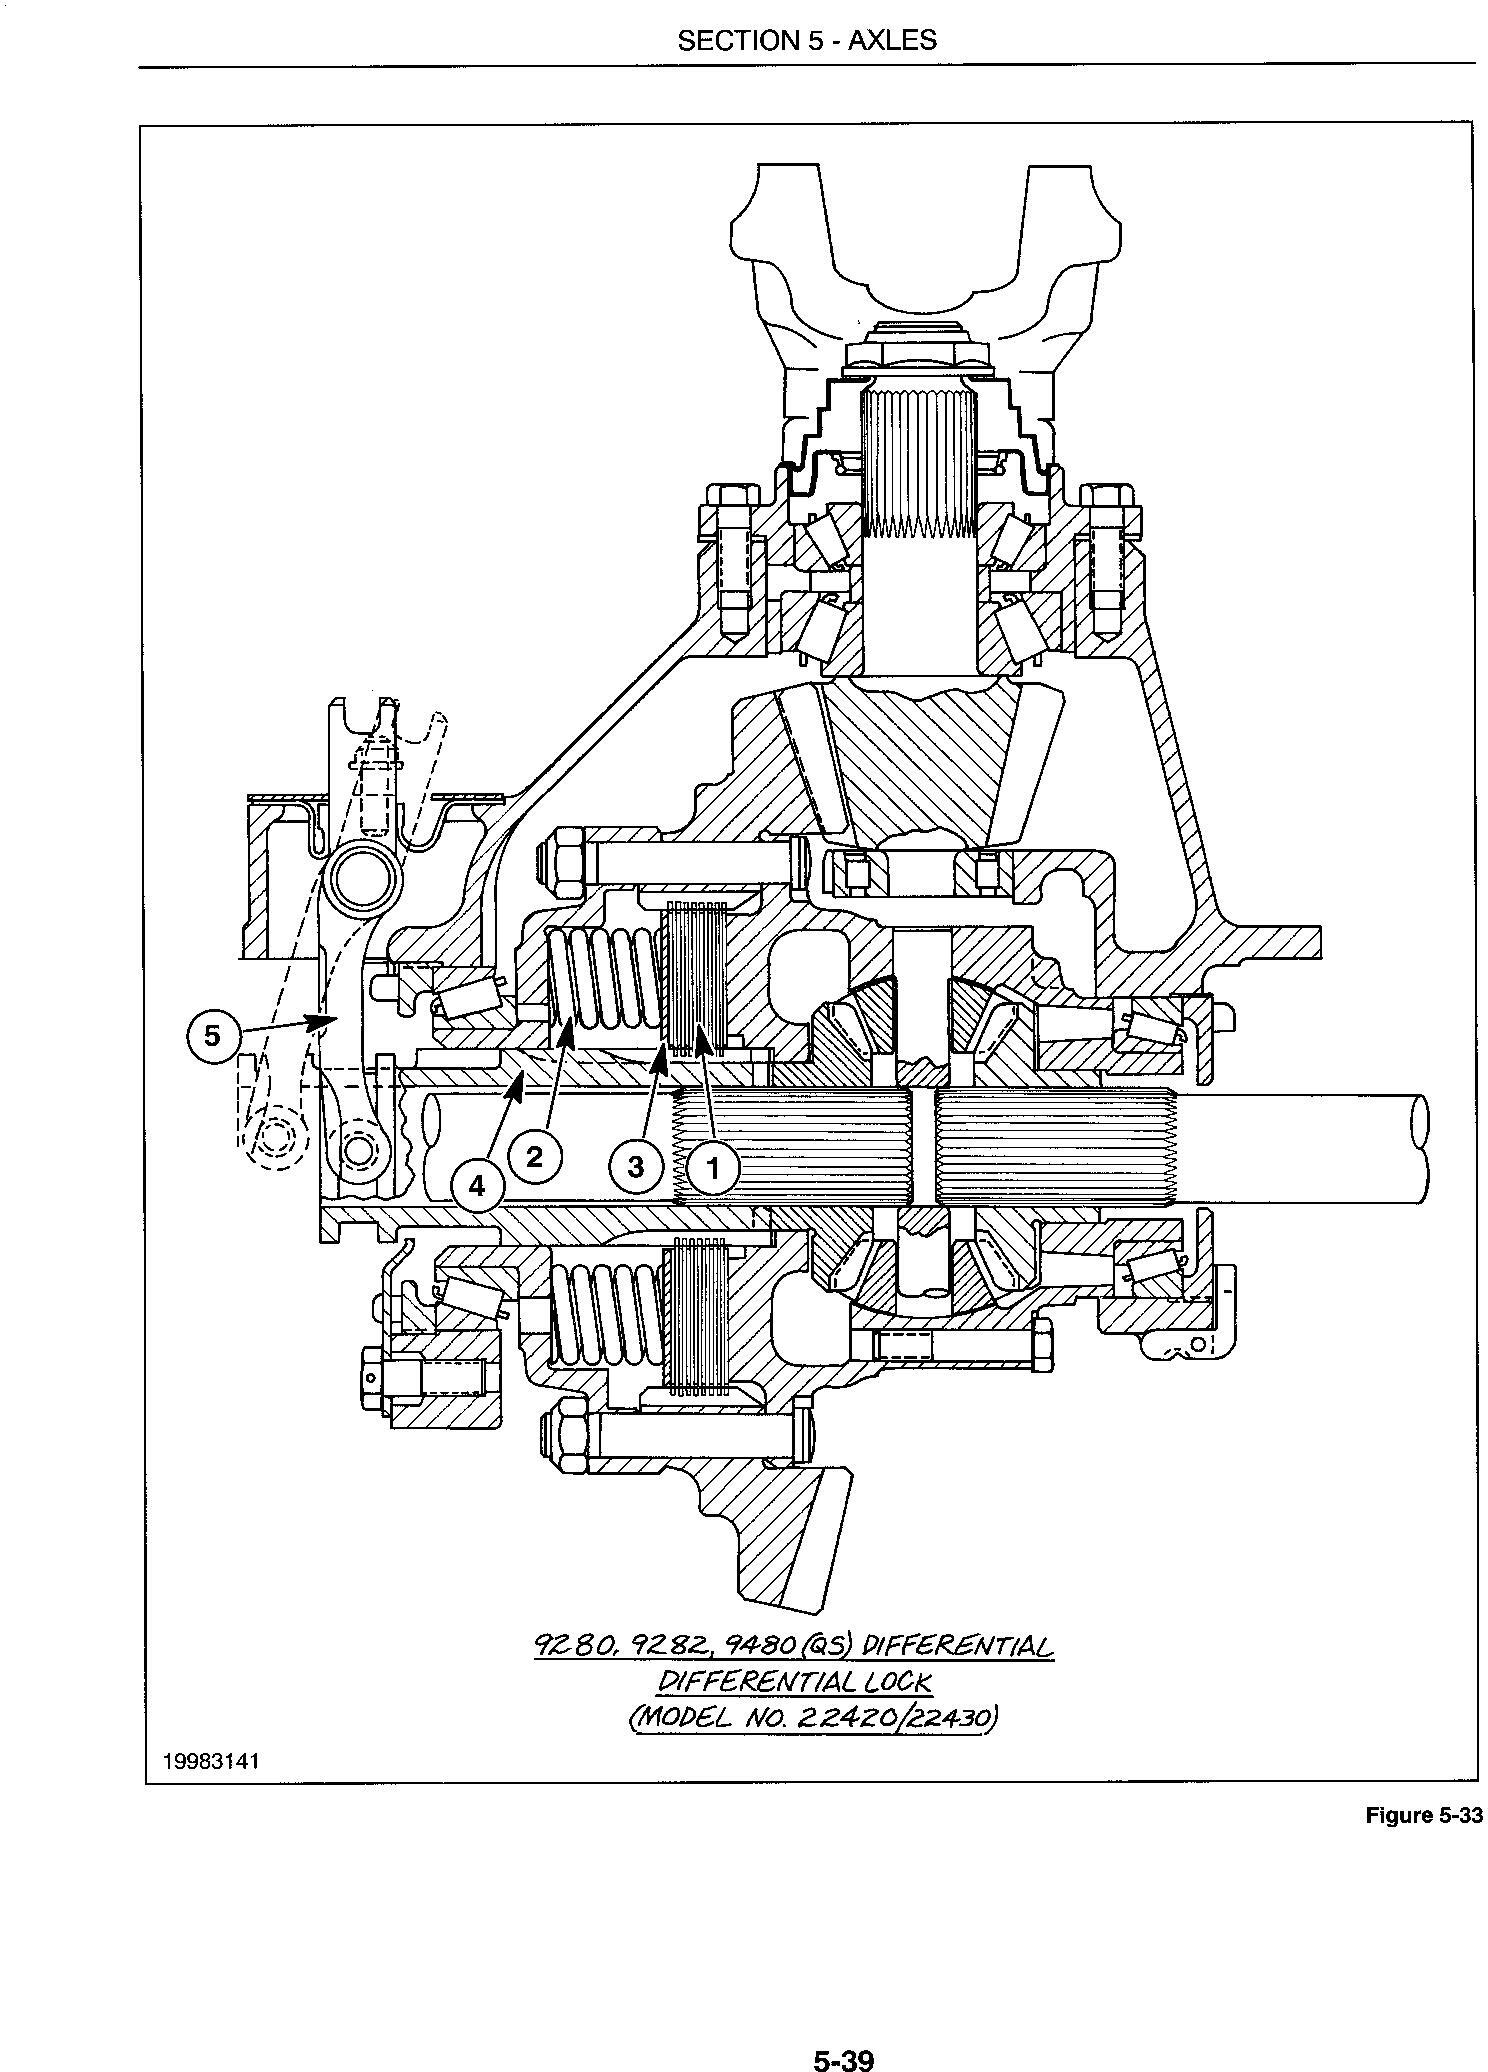 Ford 9280,9480,9680,9880,9282,9482,9682,9882 Complete Tractor Service Manual - 2